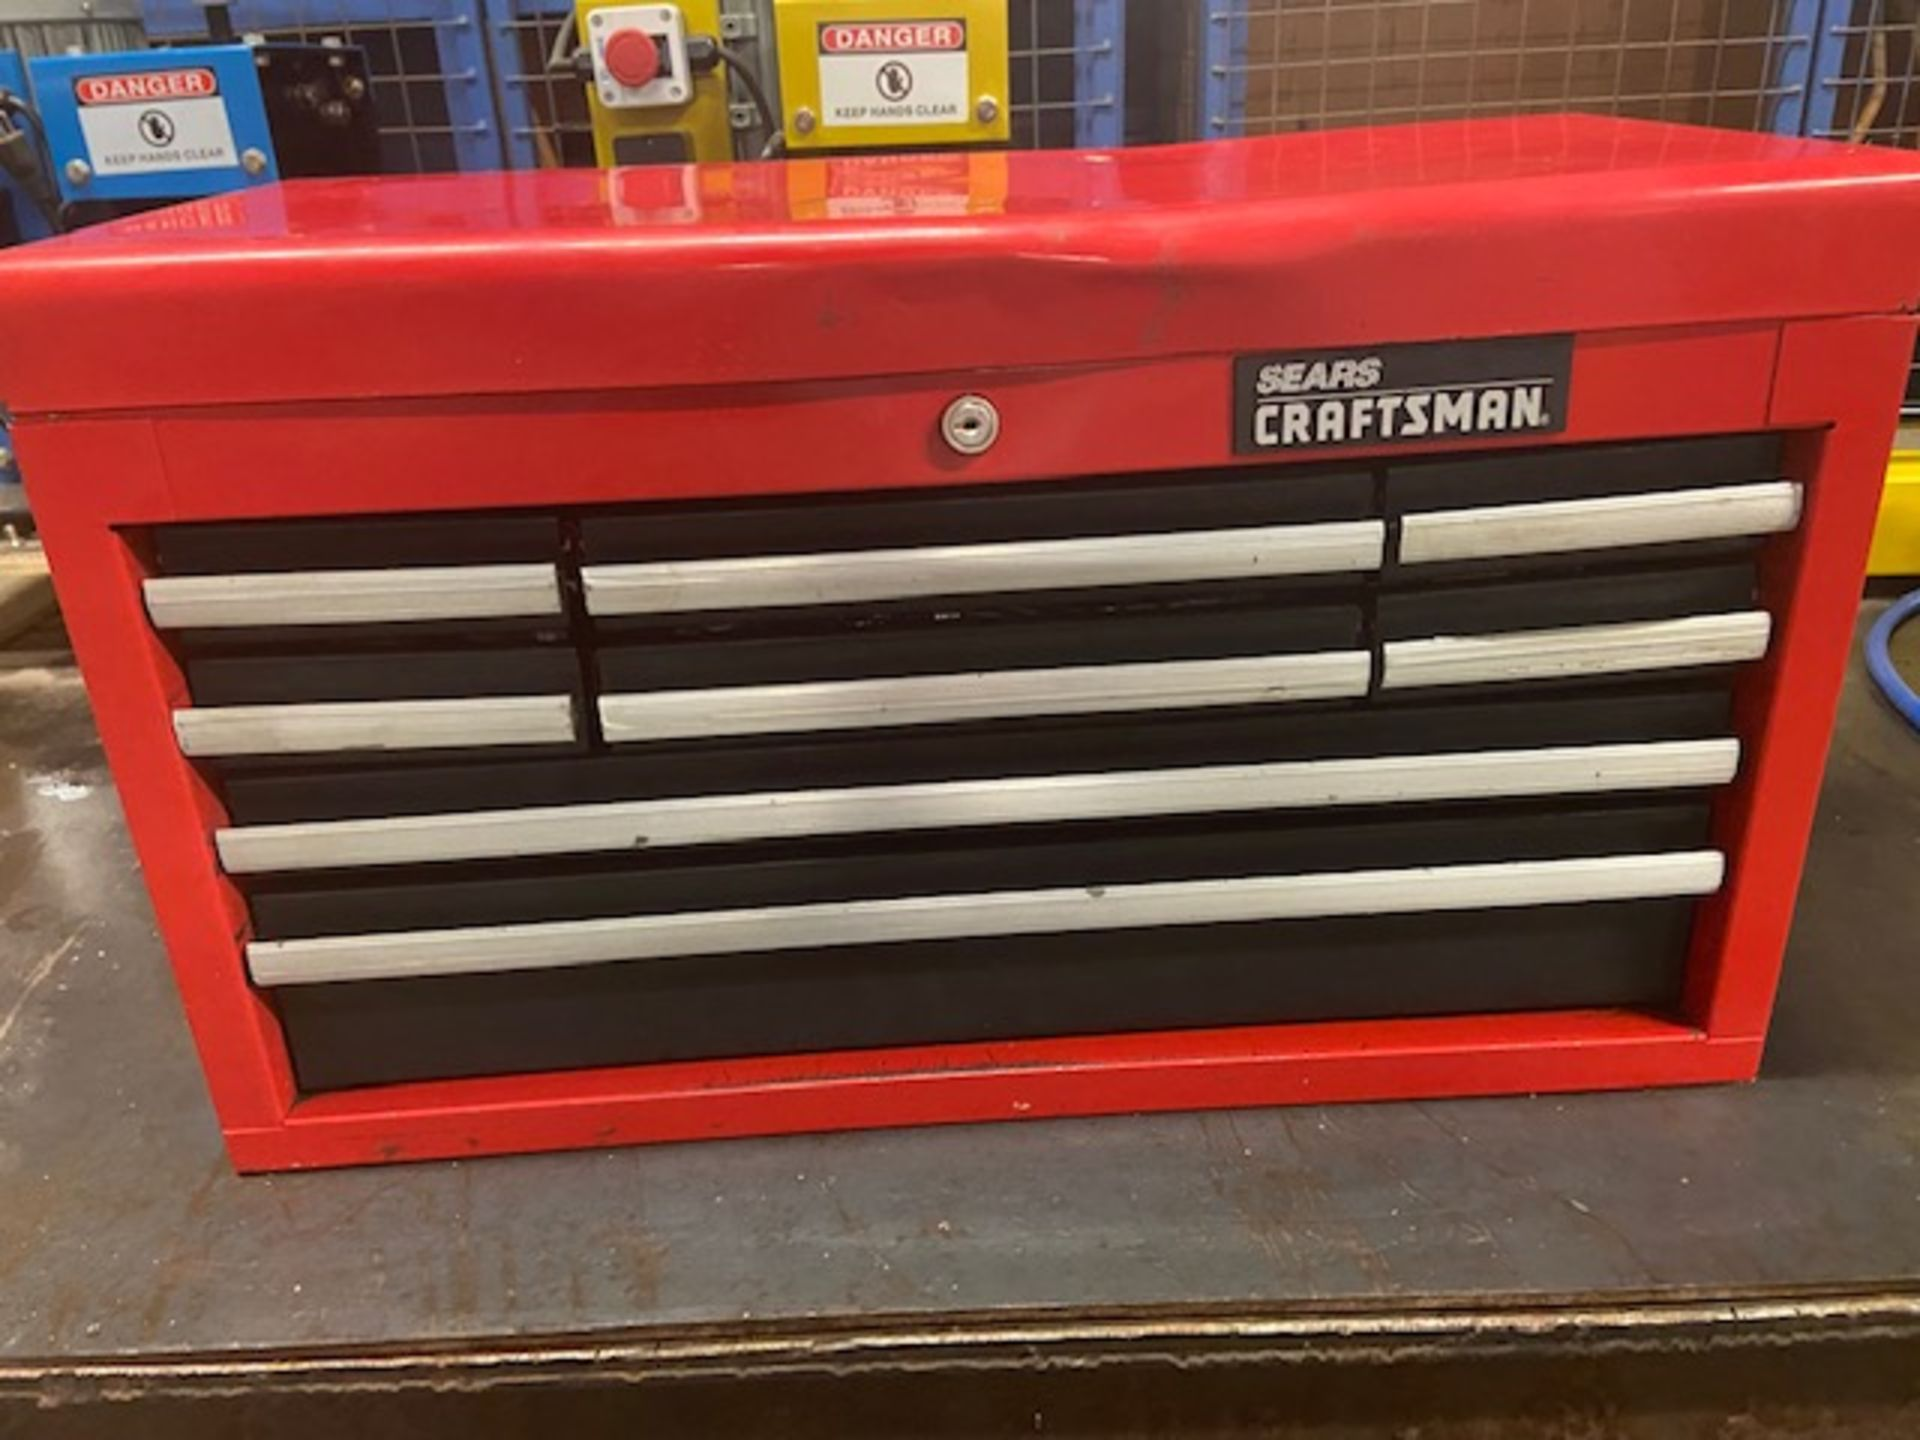 Mastercraft Heavy Duty Tool Cabinet LOADED with contents (hand tools, large drill bits and more)